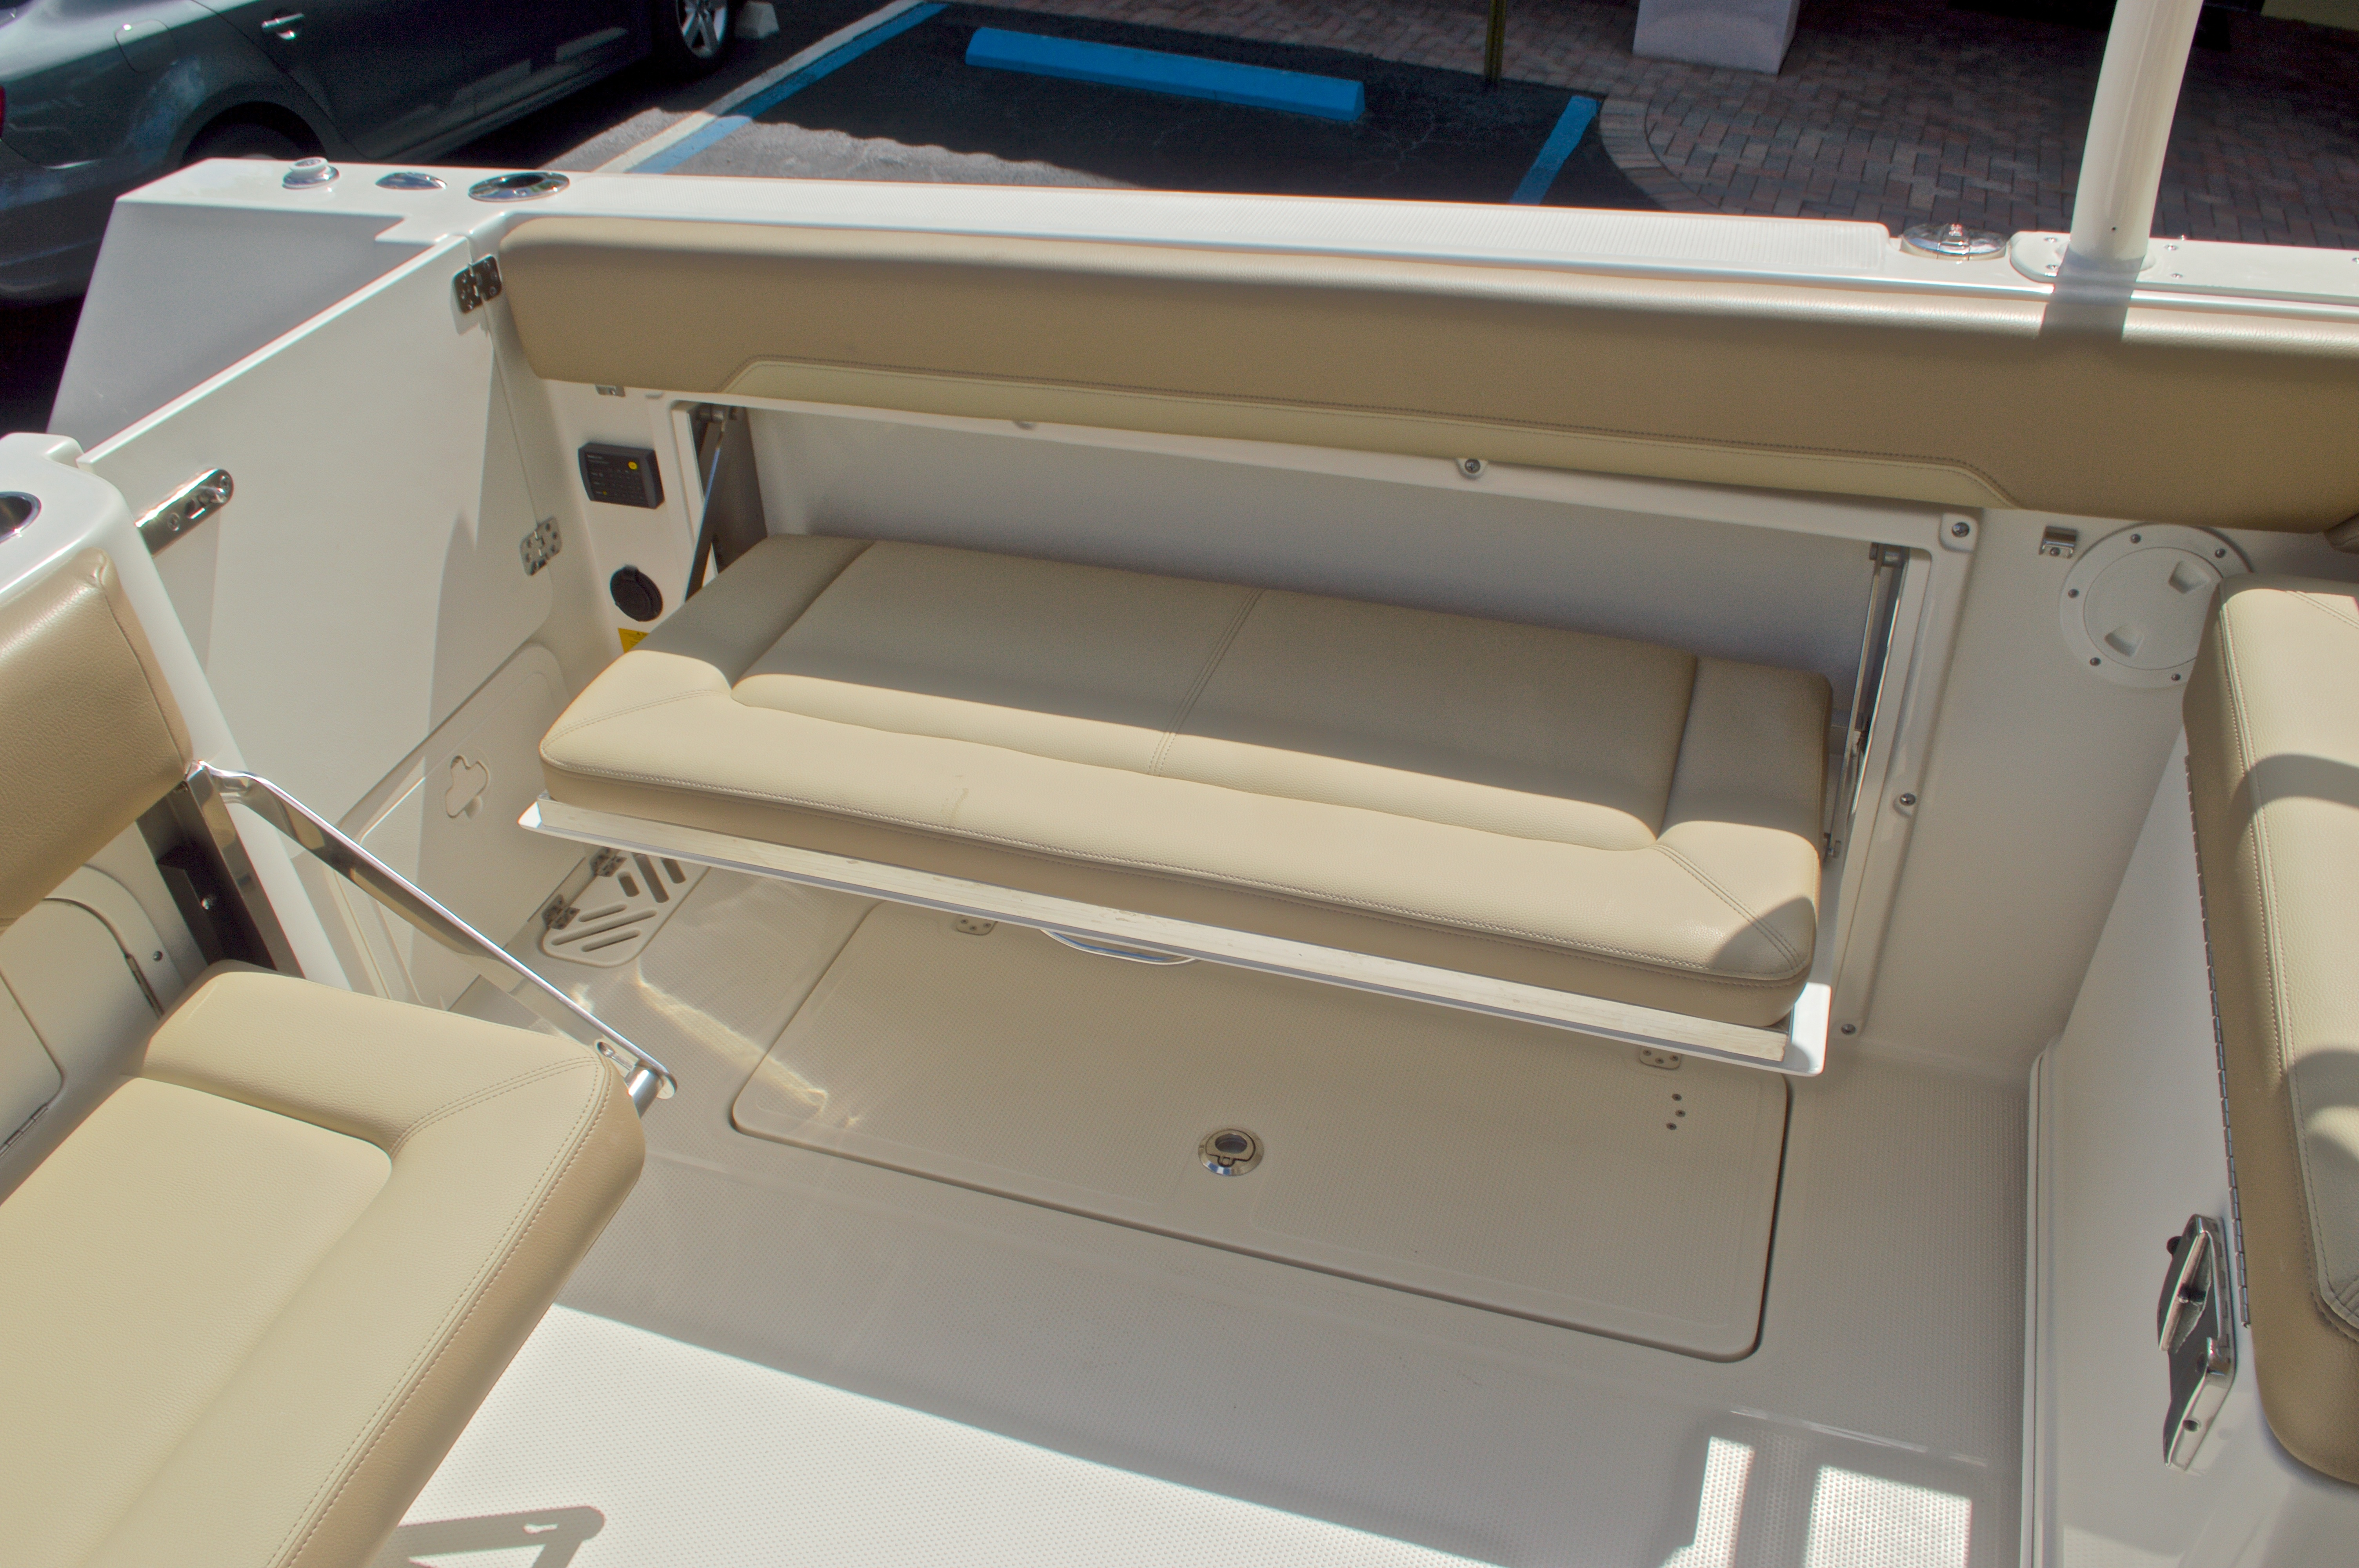 Thumbnail 25 for New 2017 Sailfish 275 Dual Console boat for sale in West Palm Beach, FL